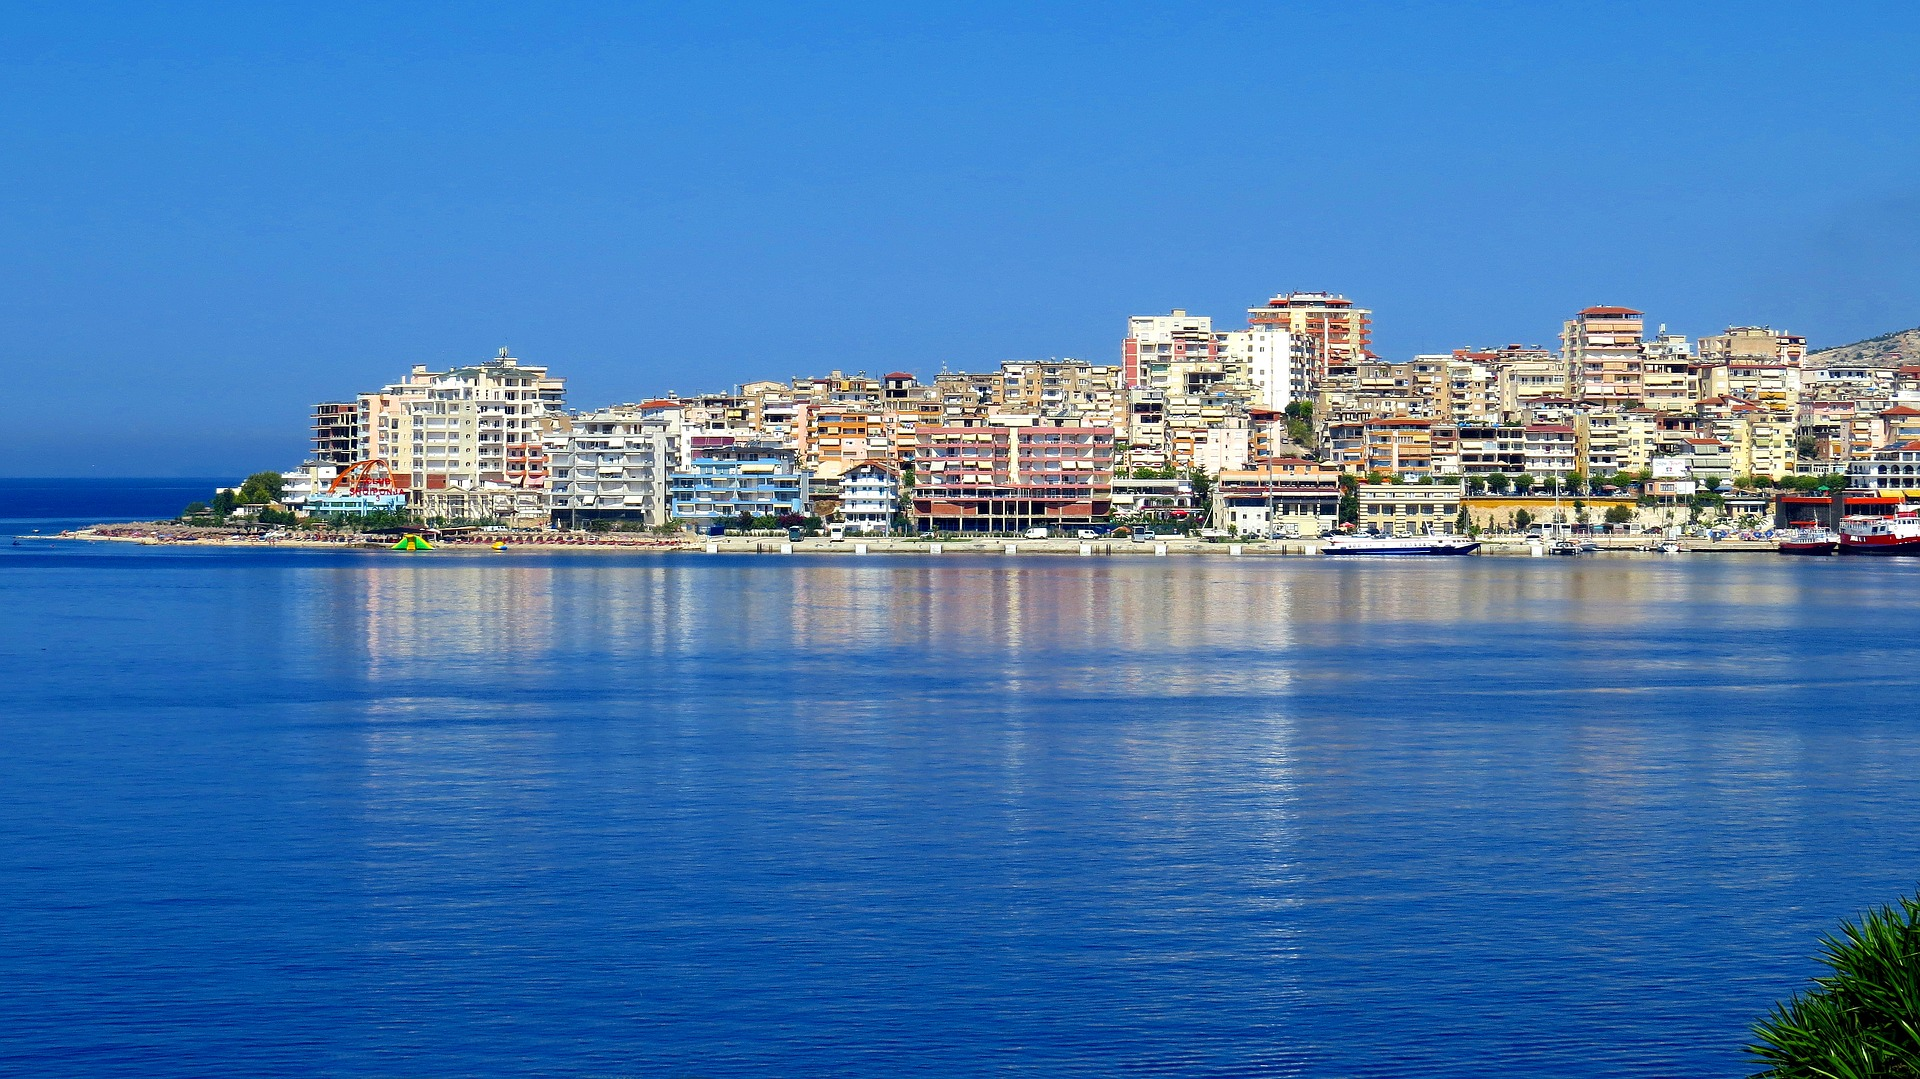 Skyline of an Albanian city with partial view on the coast